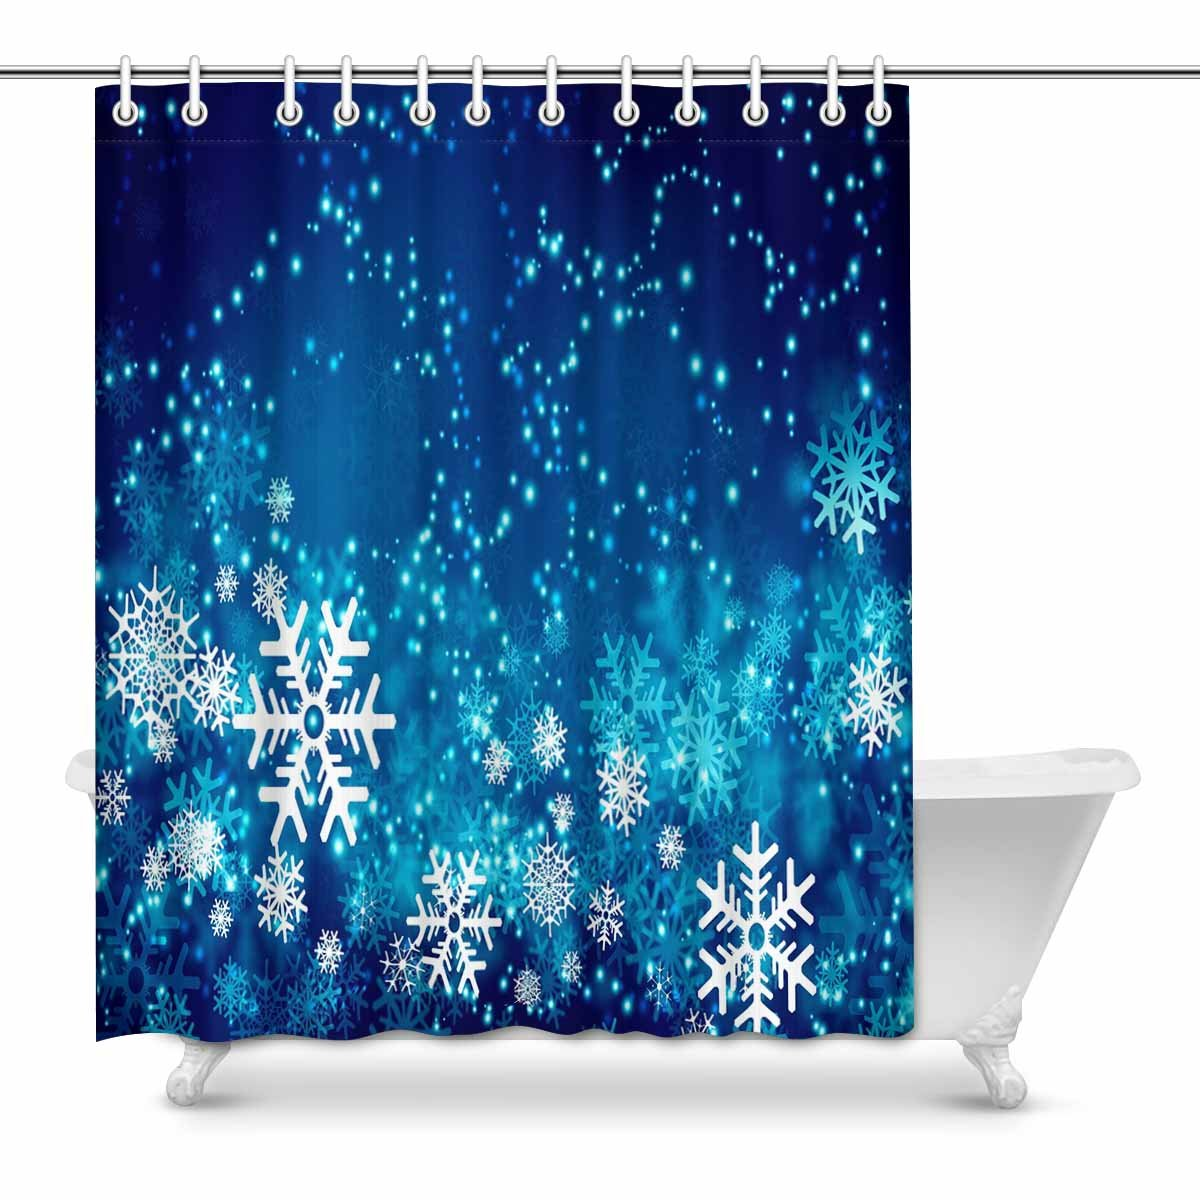 Pop Awesome Winter Abstract Snowflakes Shower Curtain 60x72 Inch